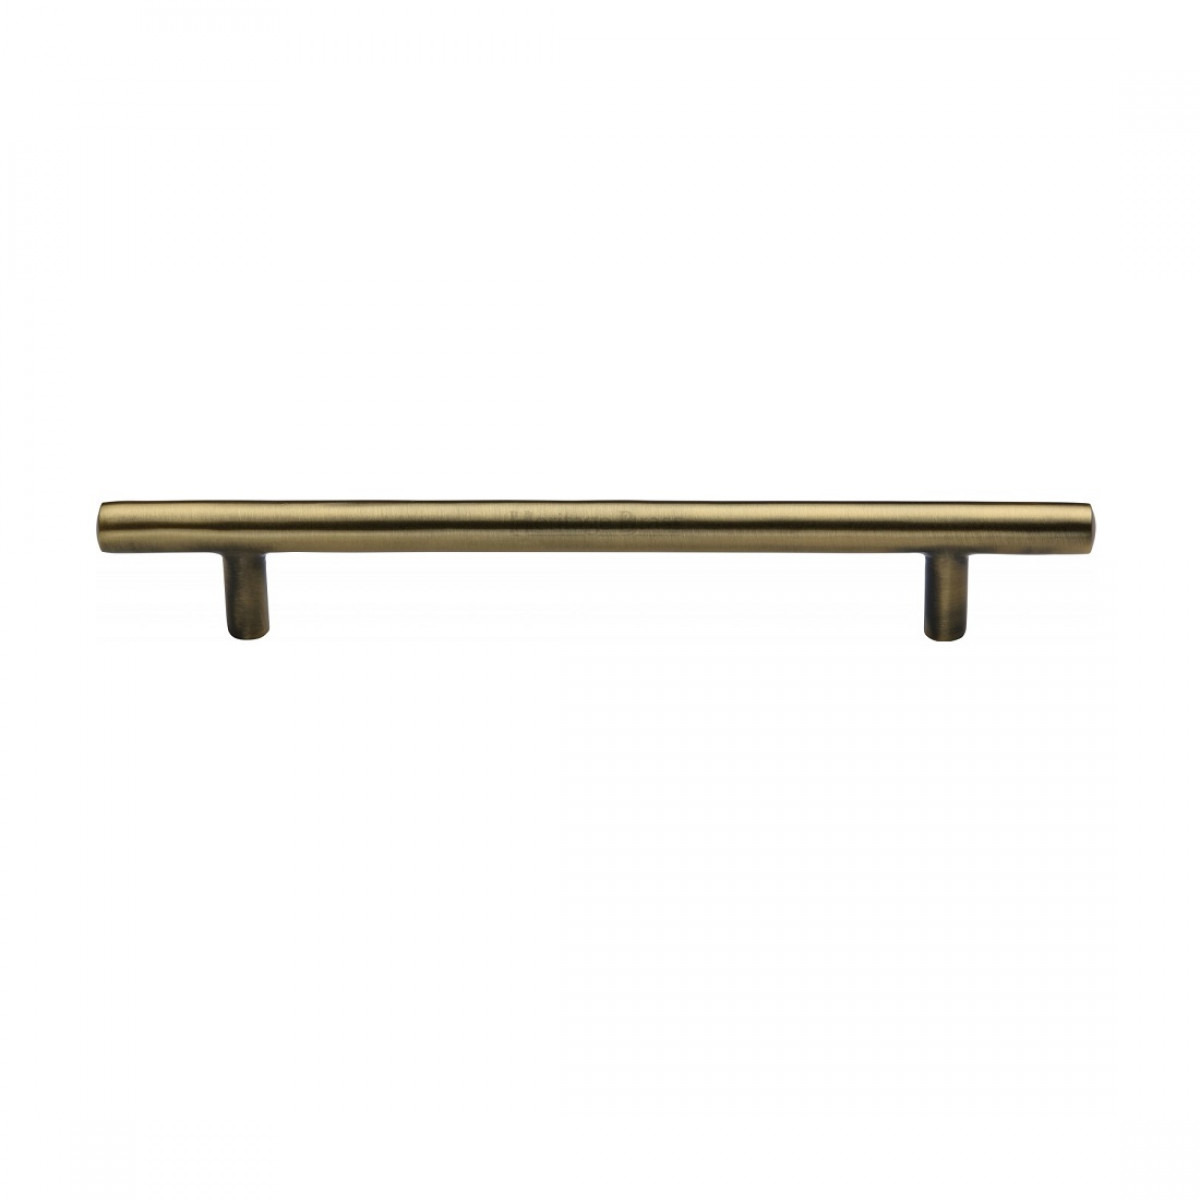 M Marcus Bar Cabinet Pull 152mm Antique Brass